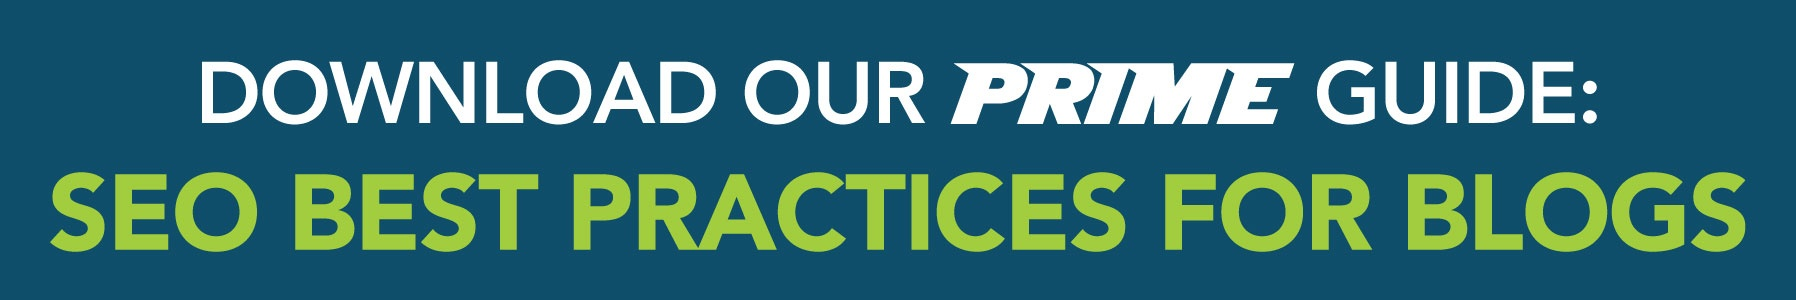 download our prime guide: seo best practices for blogs